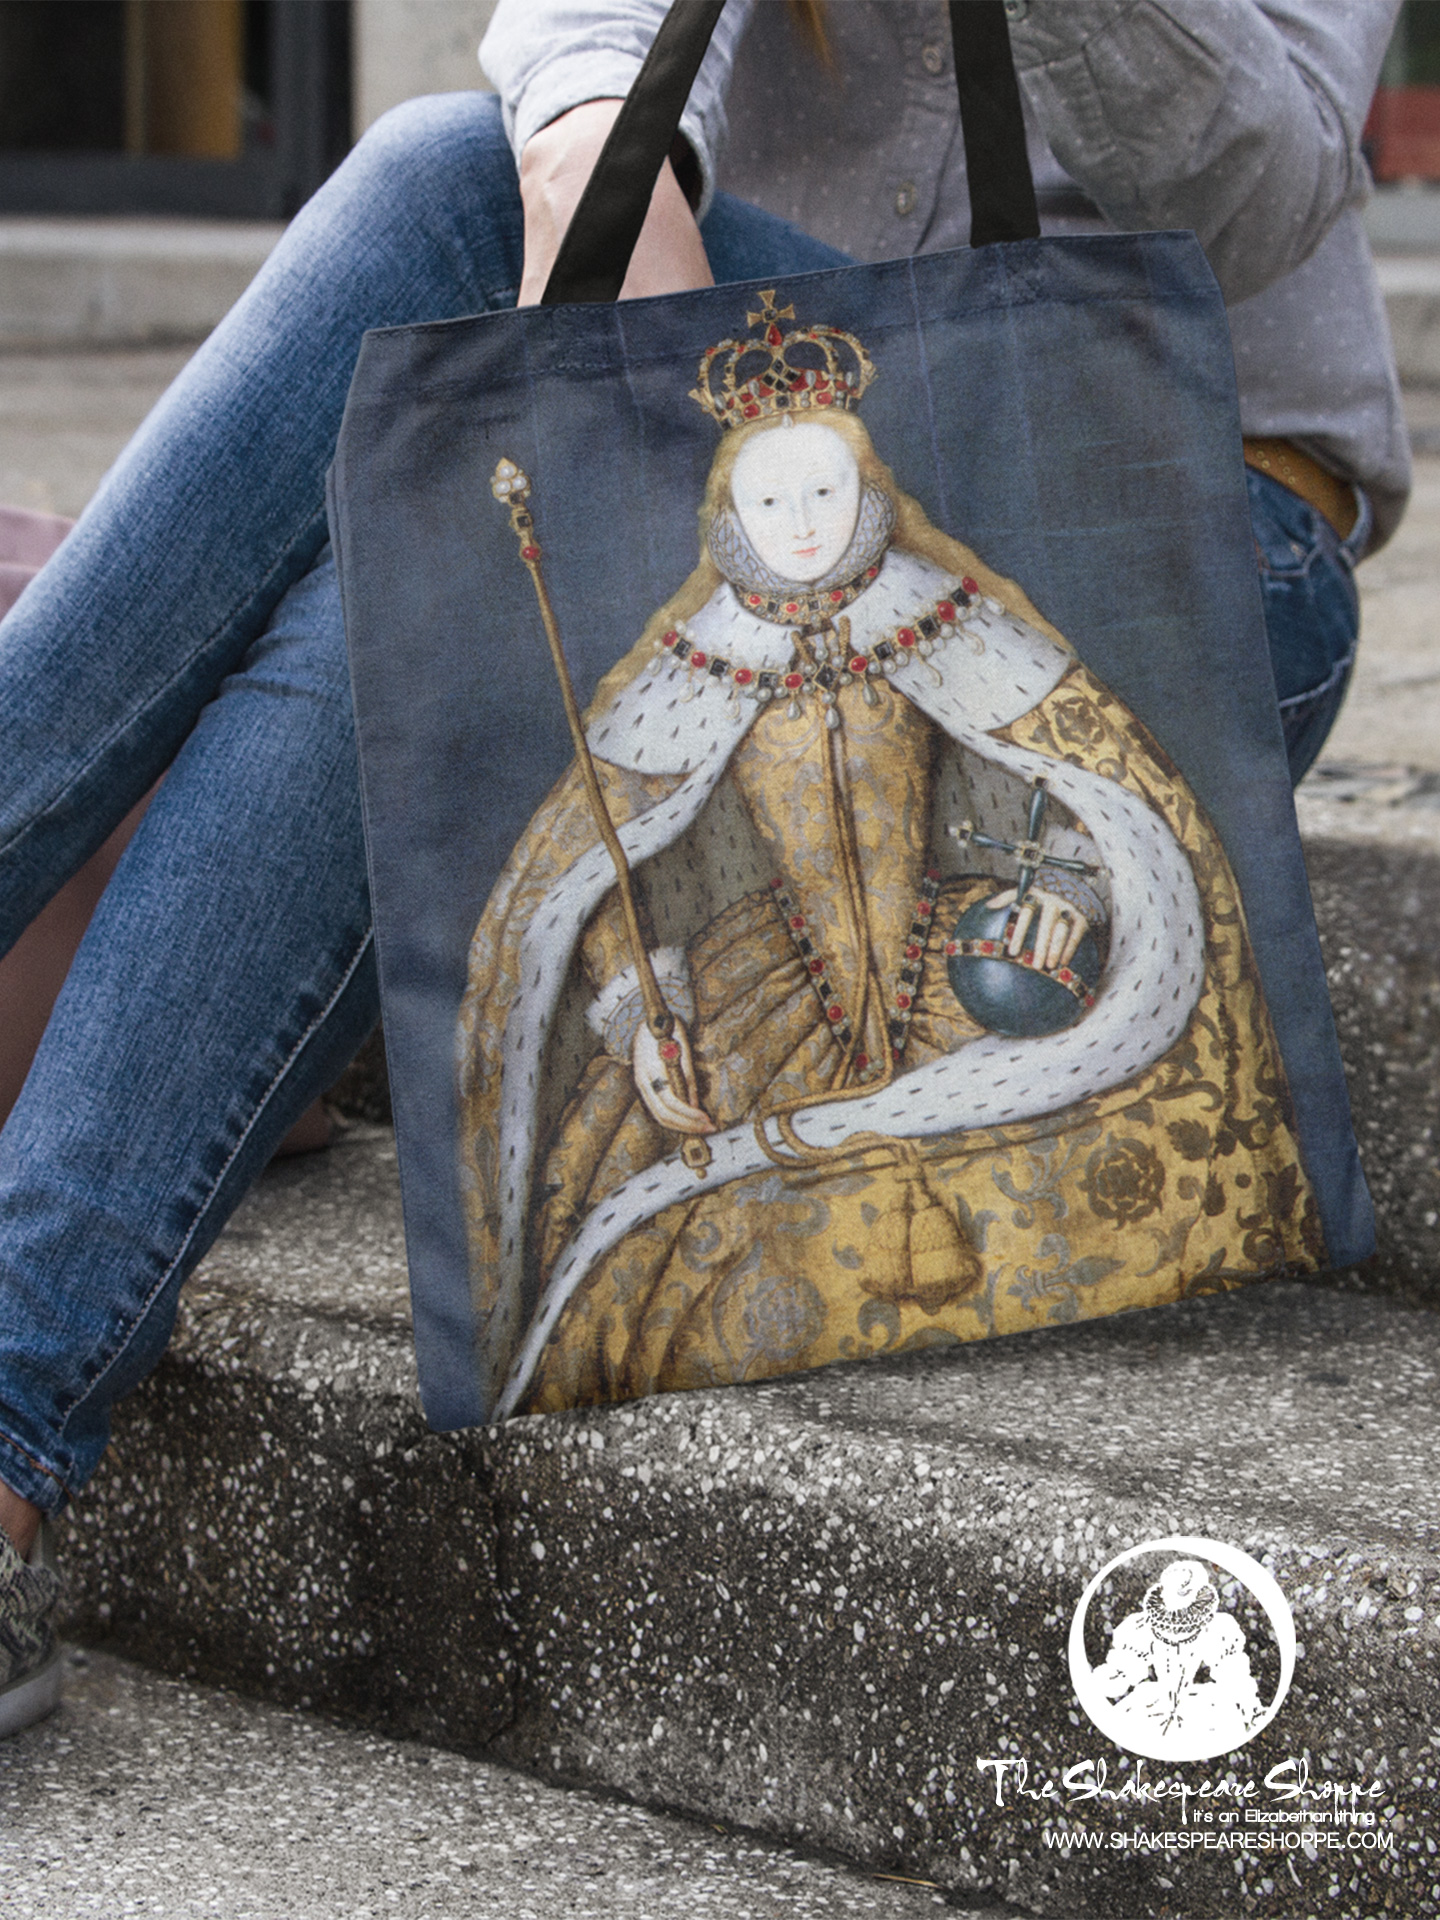 Focus On: Elizabeth I Coronation Tote Bag